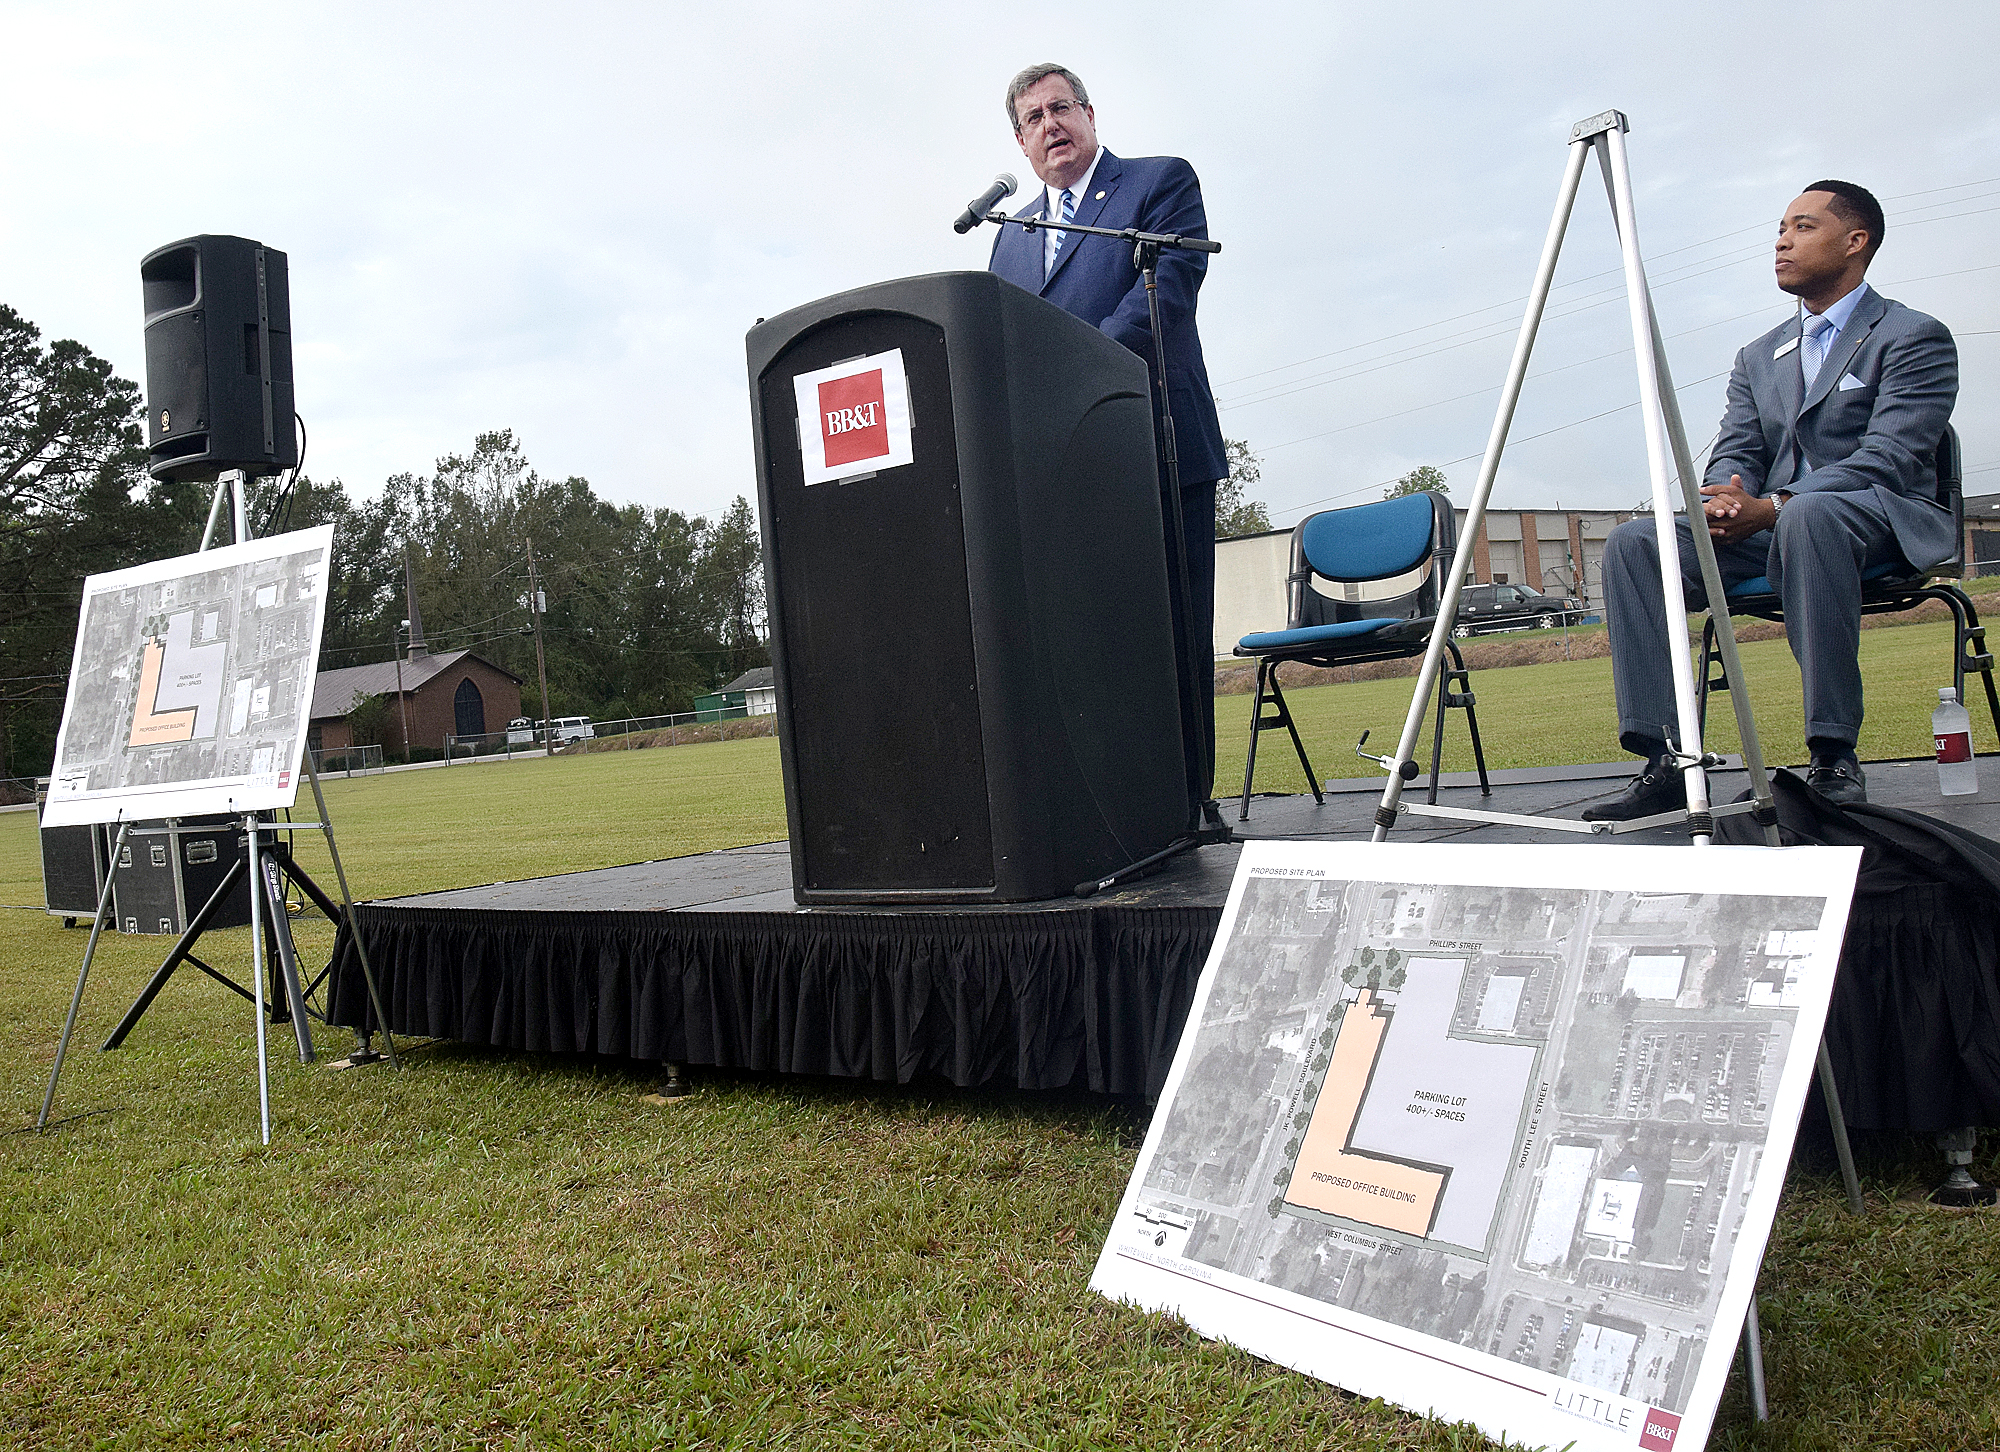 Phil Marion, BB&T southeastern Regional president, speaks at a press conference in Whiteville Tuesday. Staff photo by Les High